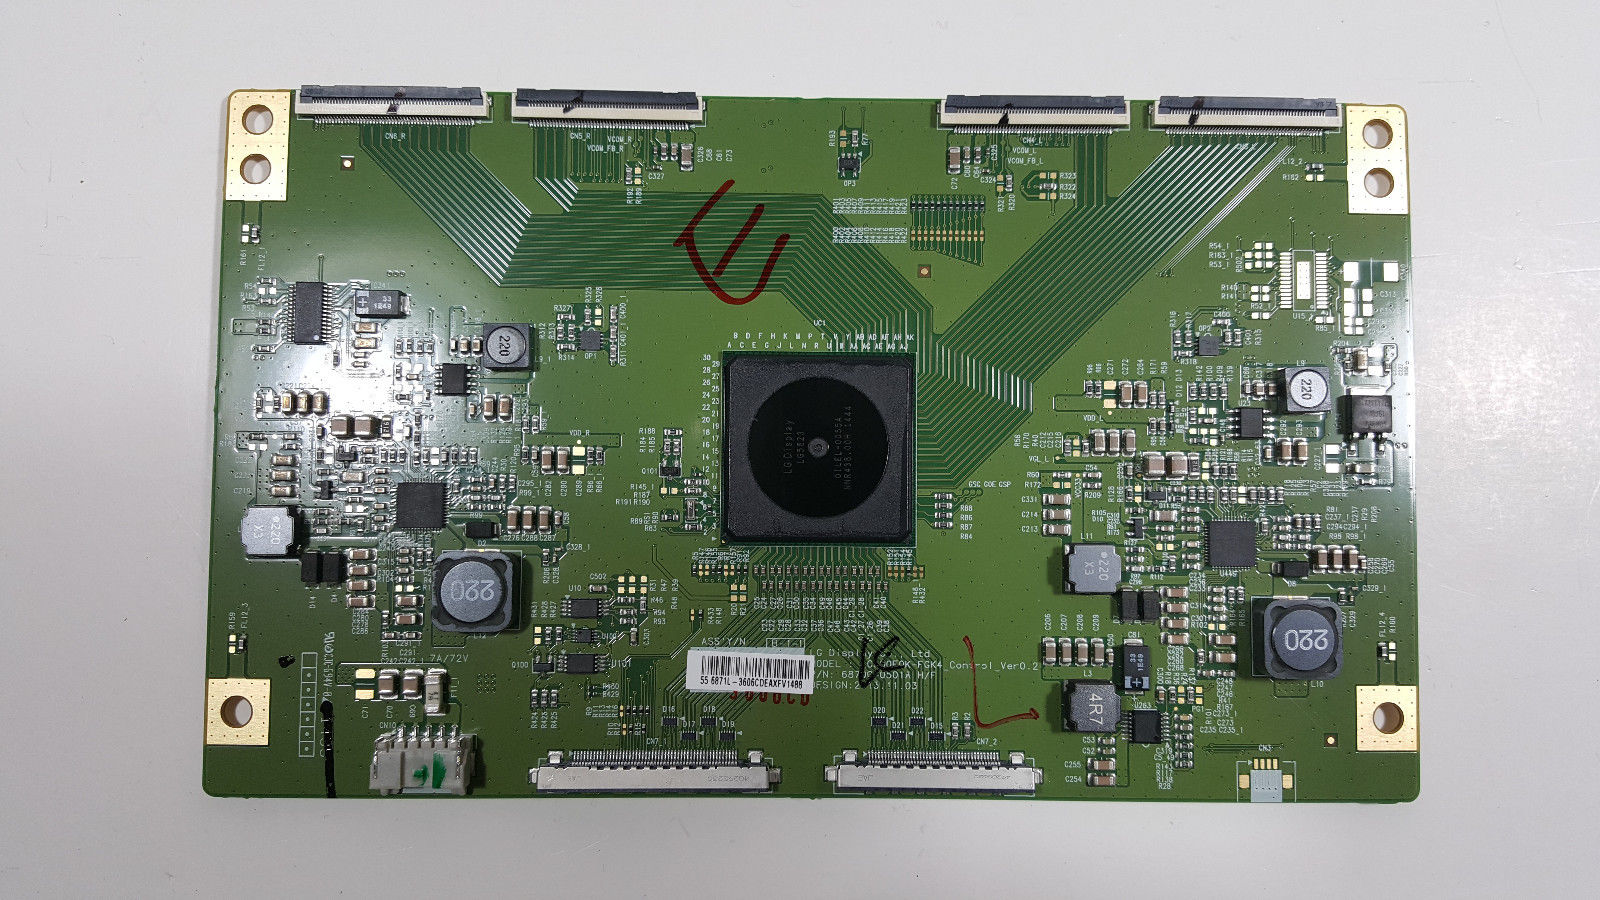 SONY LED TV T-CON BOARD 6870C-0501A from XBR-55X850B